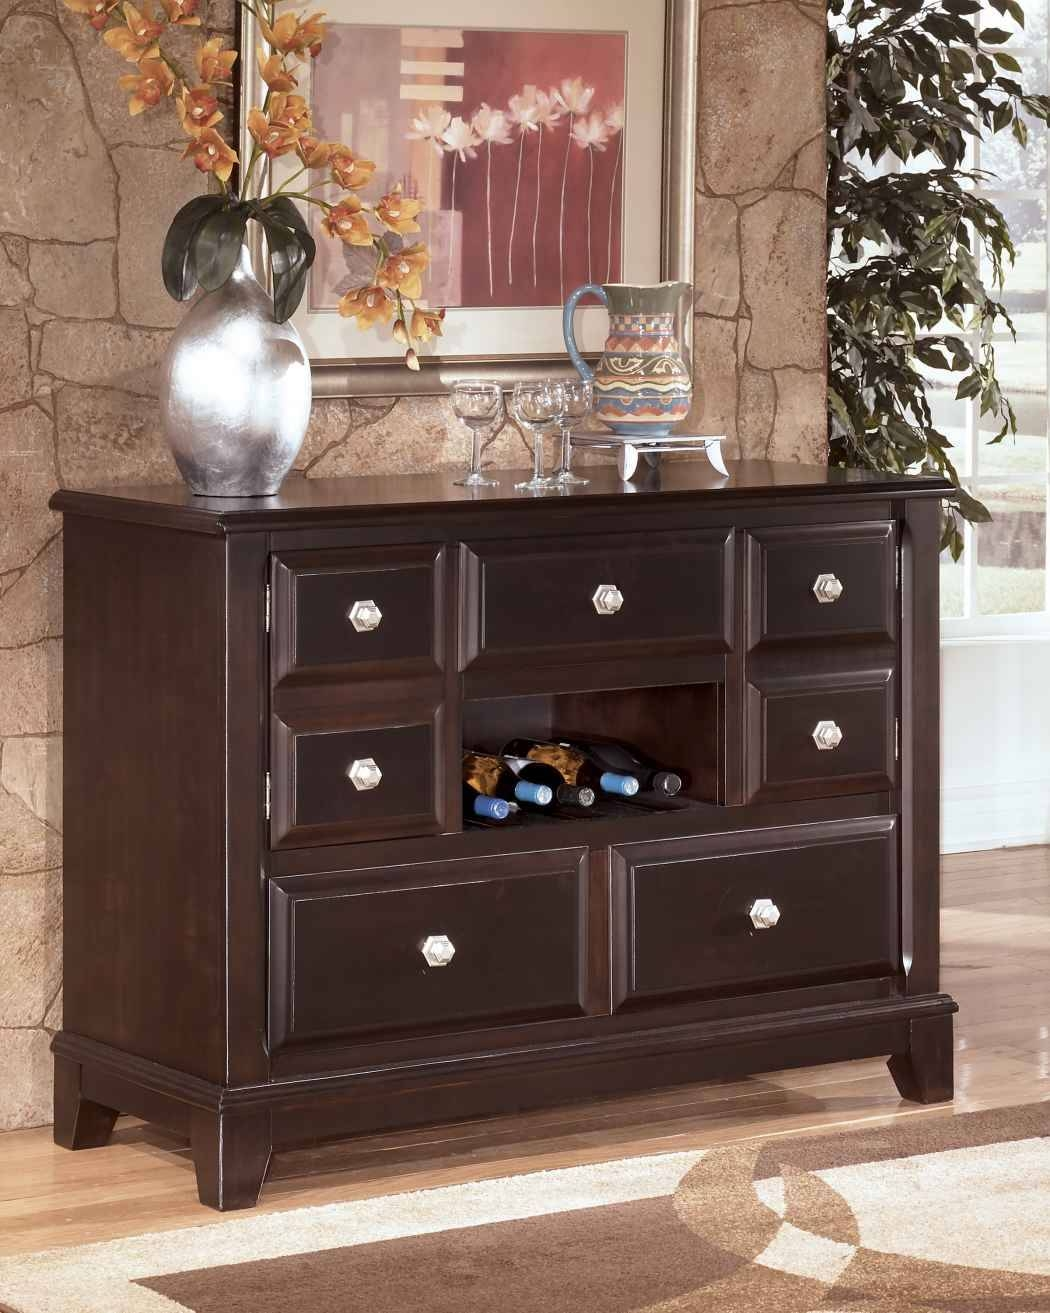 Sideboards: Astounding Buffet Tables For Dining Room Narrow With Sideboards For Dining Room (#17 of 20)